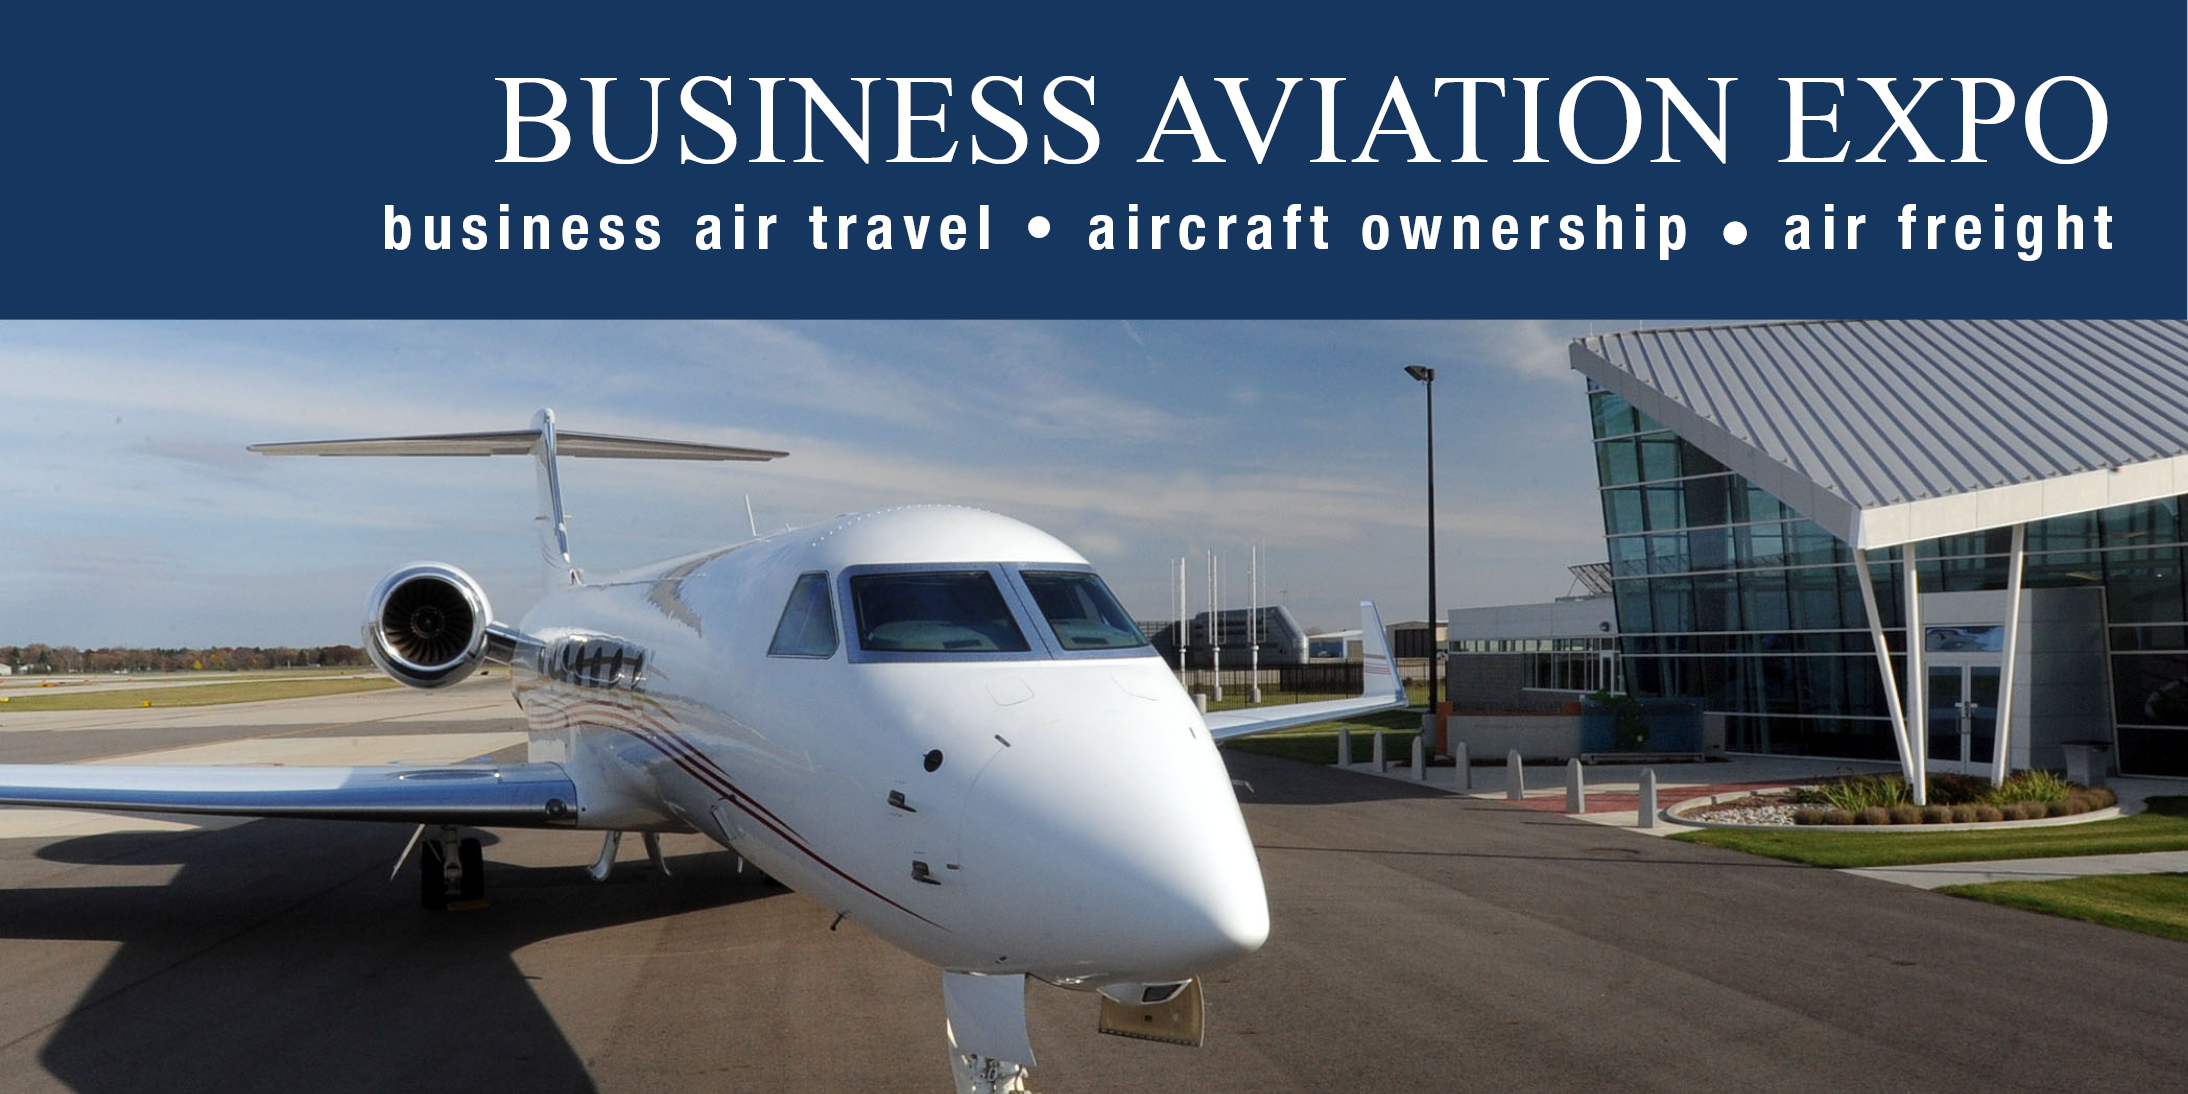 business aviation thesis The business foundation and aviation course along with general education courses together flight training is not required for aviation management students, but may be taken as an elective.